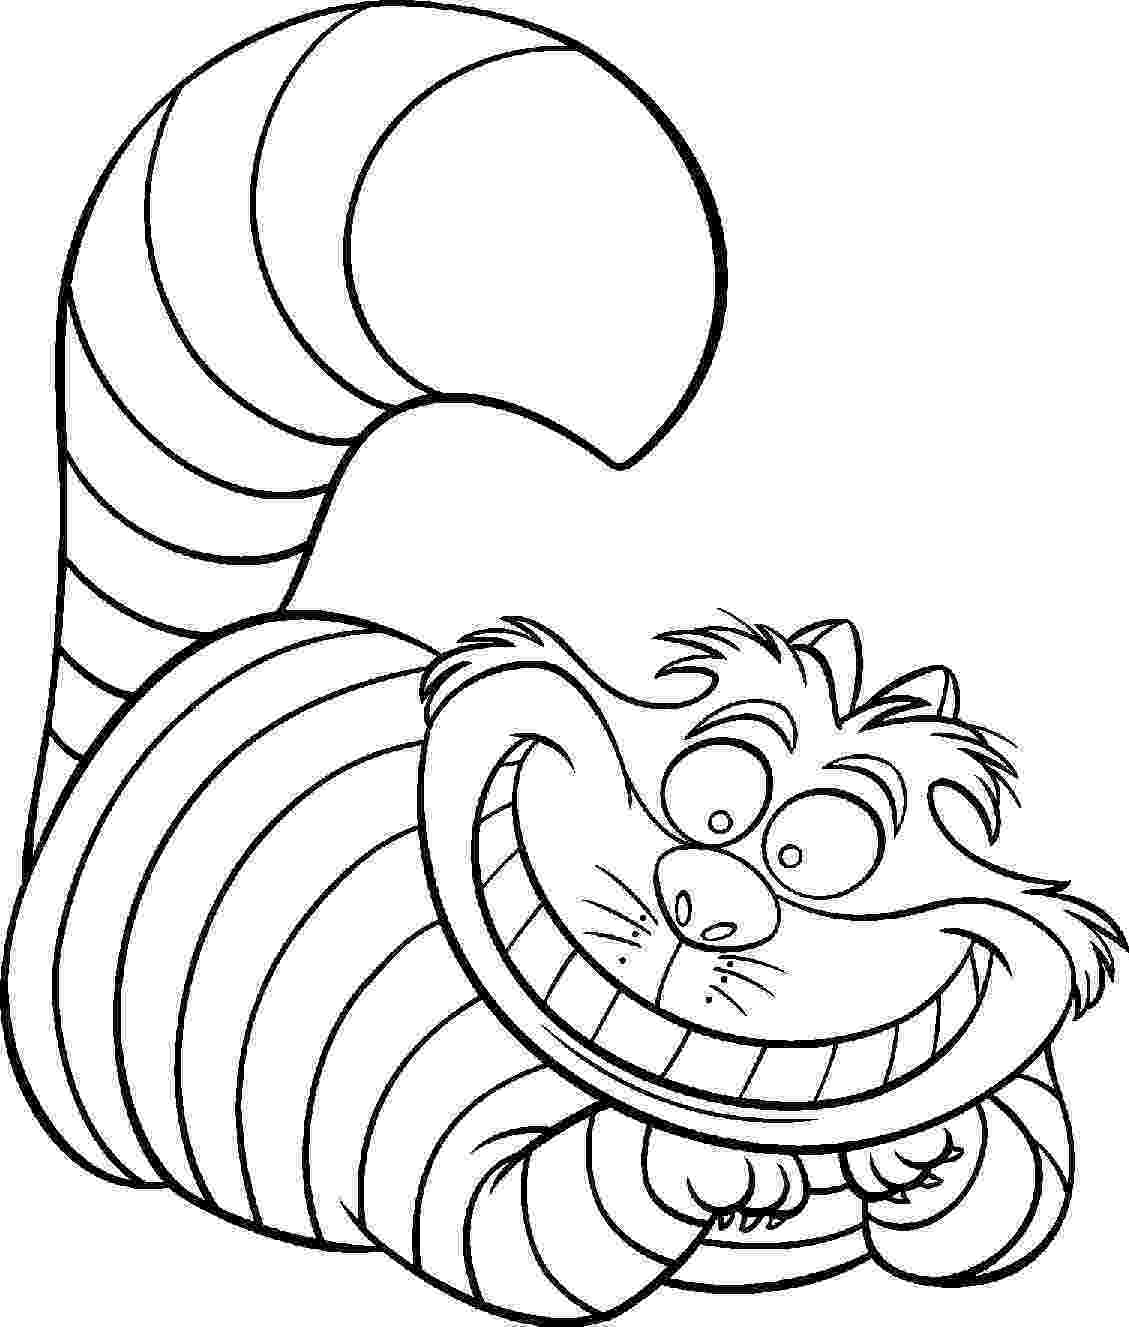 awesome coloring pages for kids 20 awesome things to color fun for kids it39s always autumn kids for pages coloring awesome